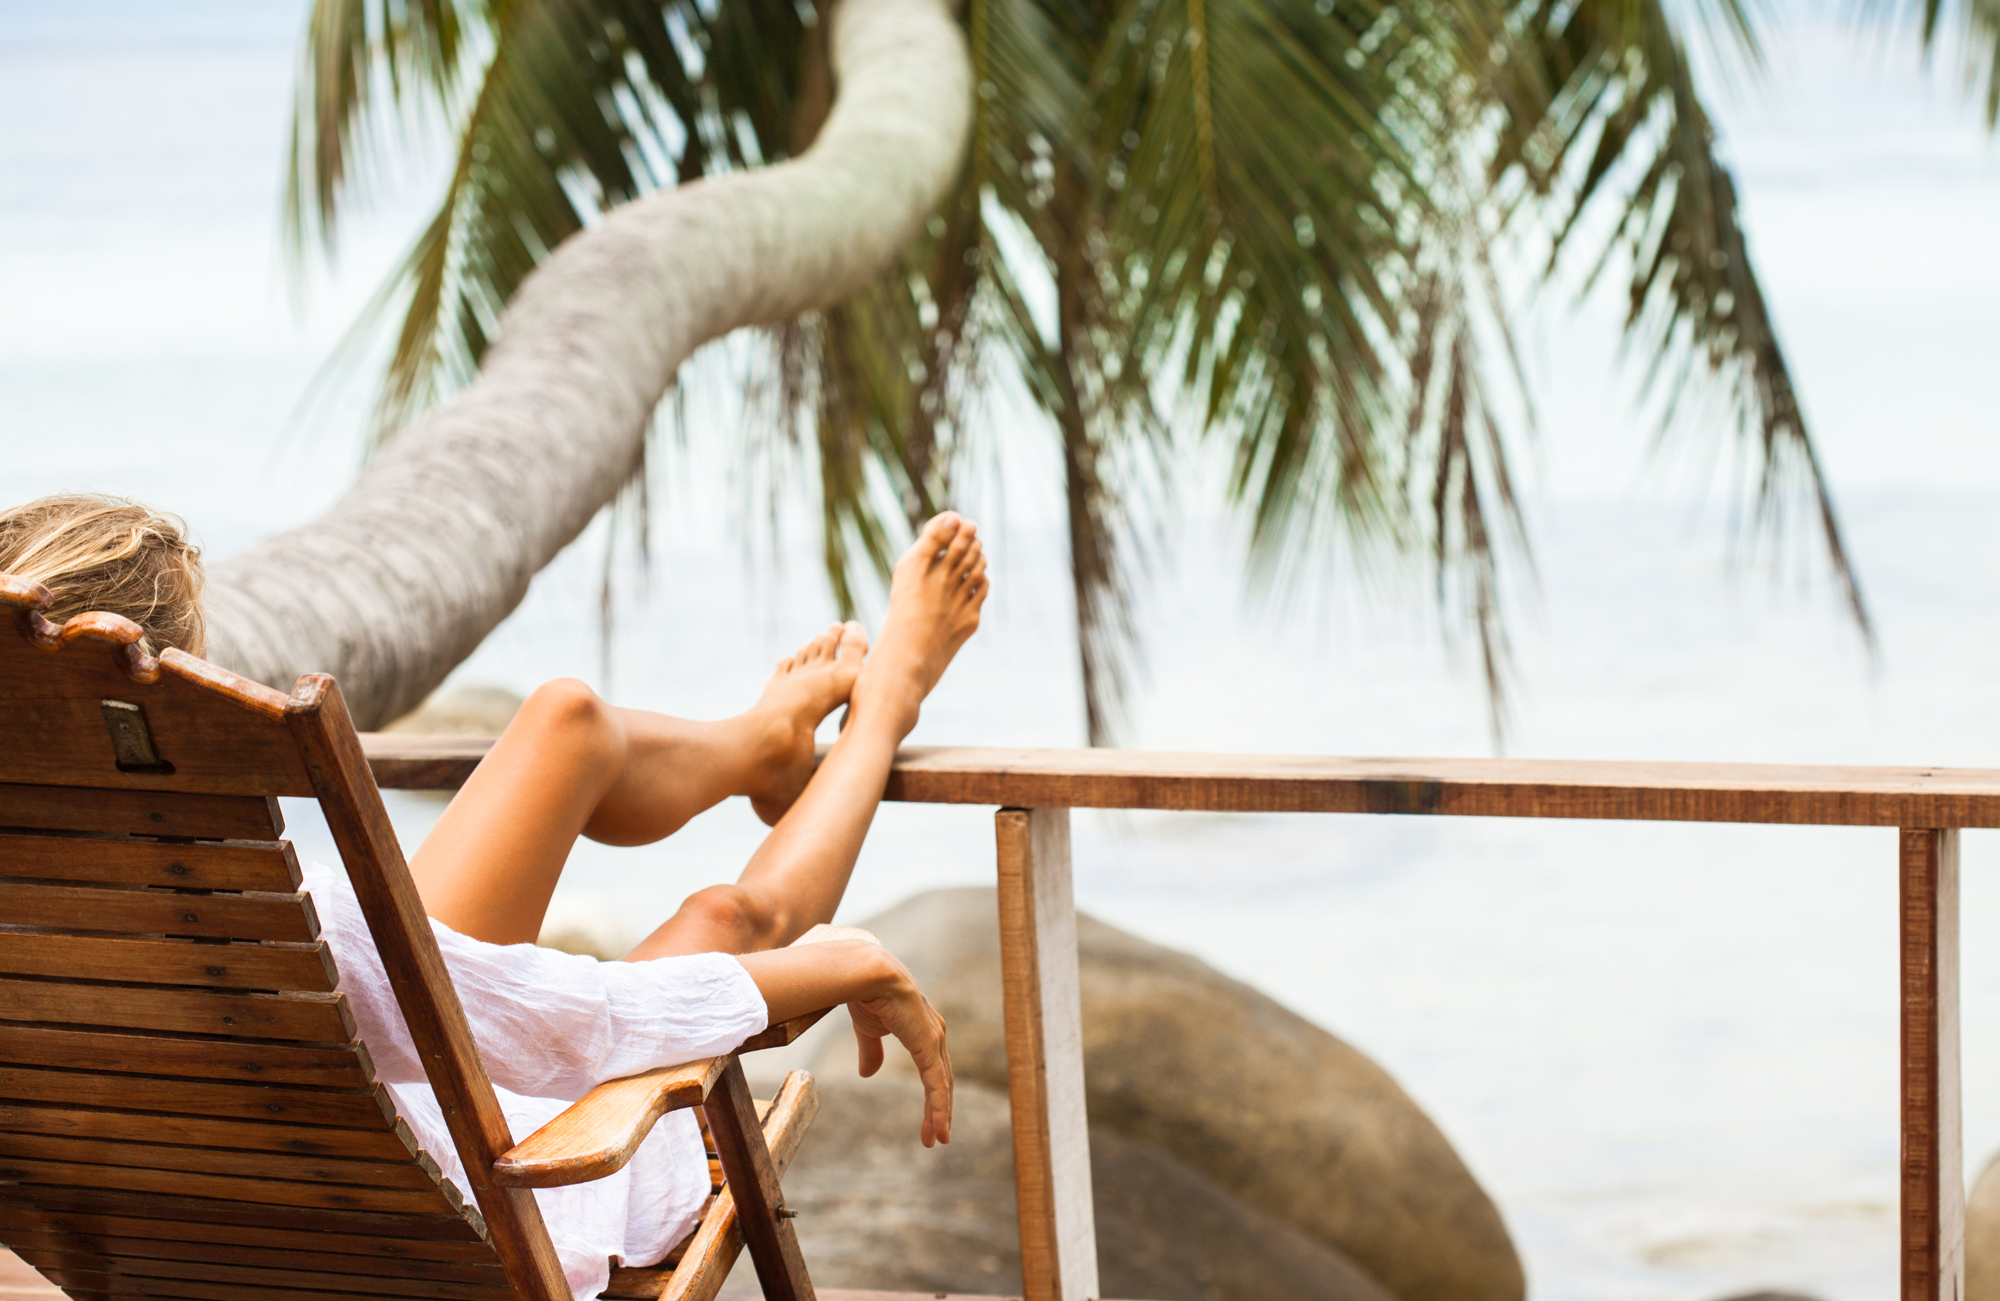 7 Simple Ways to Unplug While on Vacation